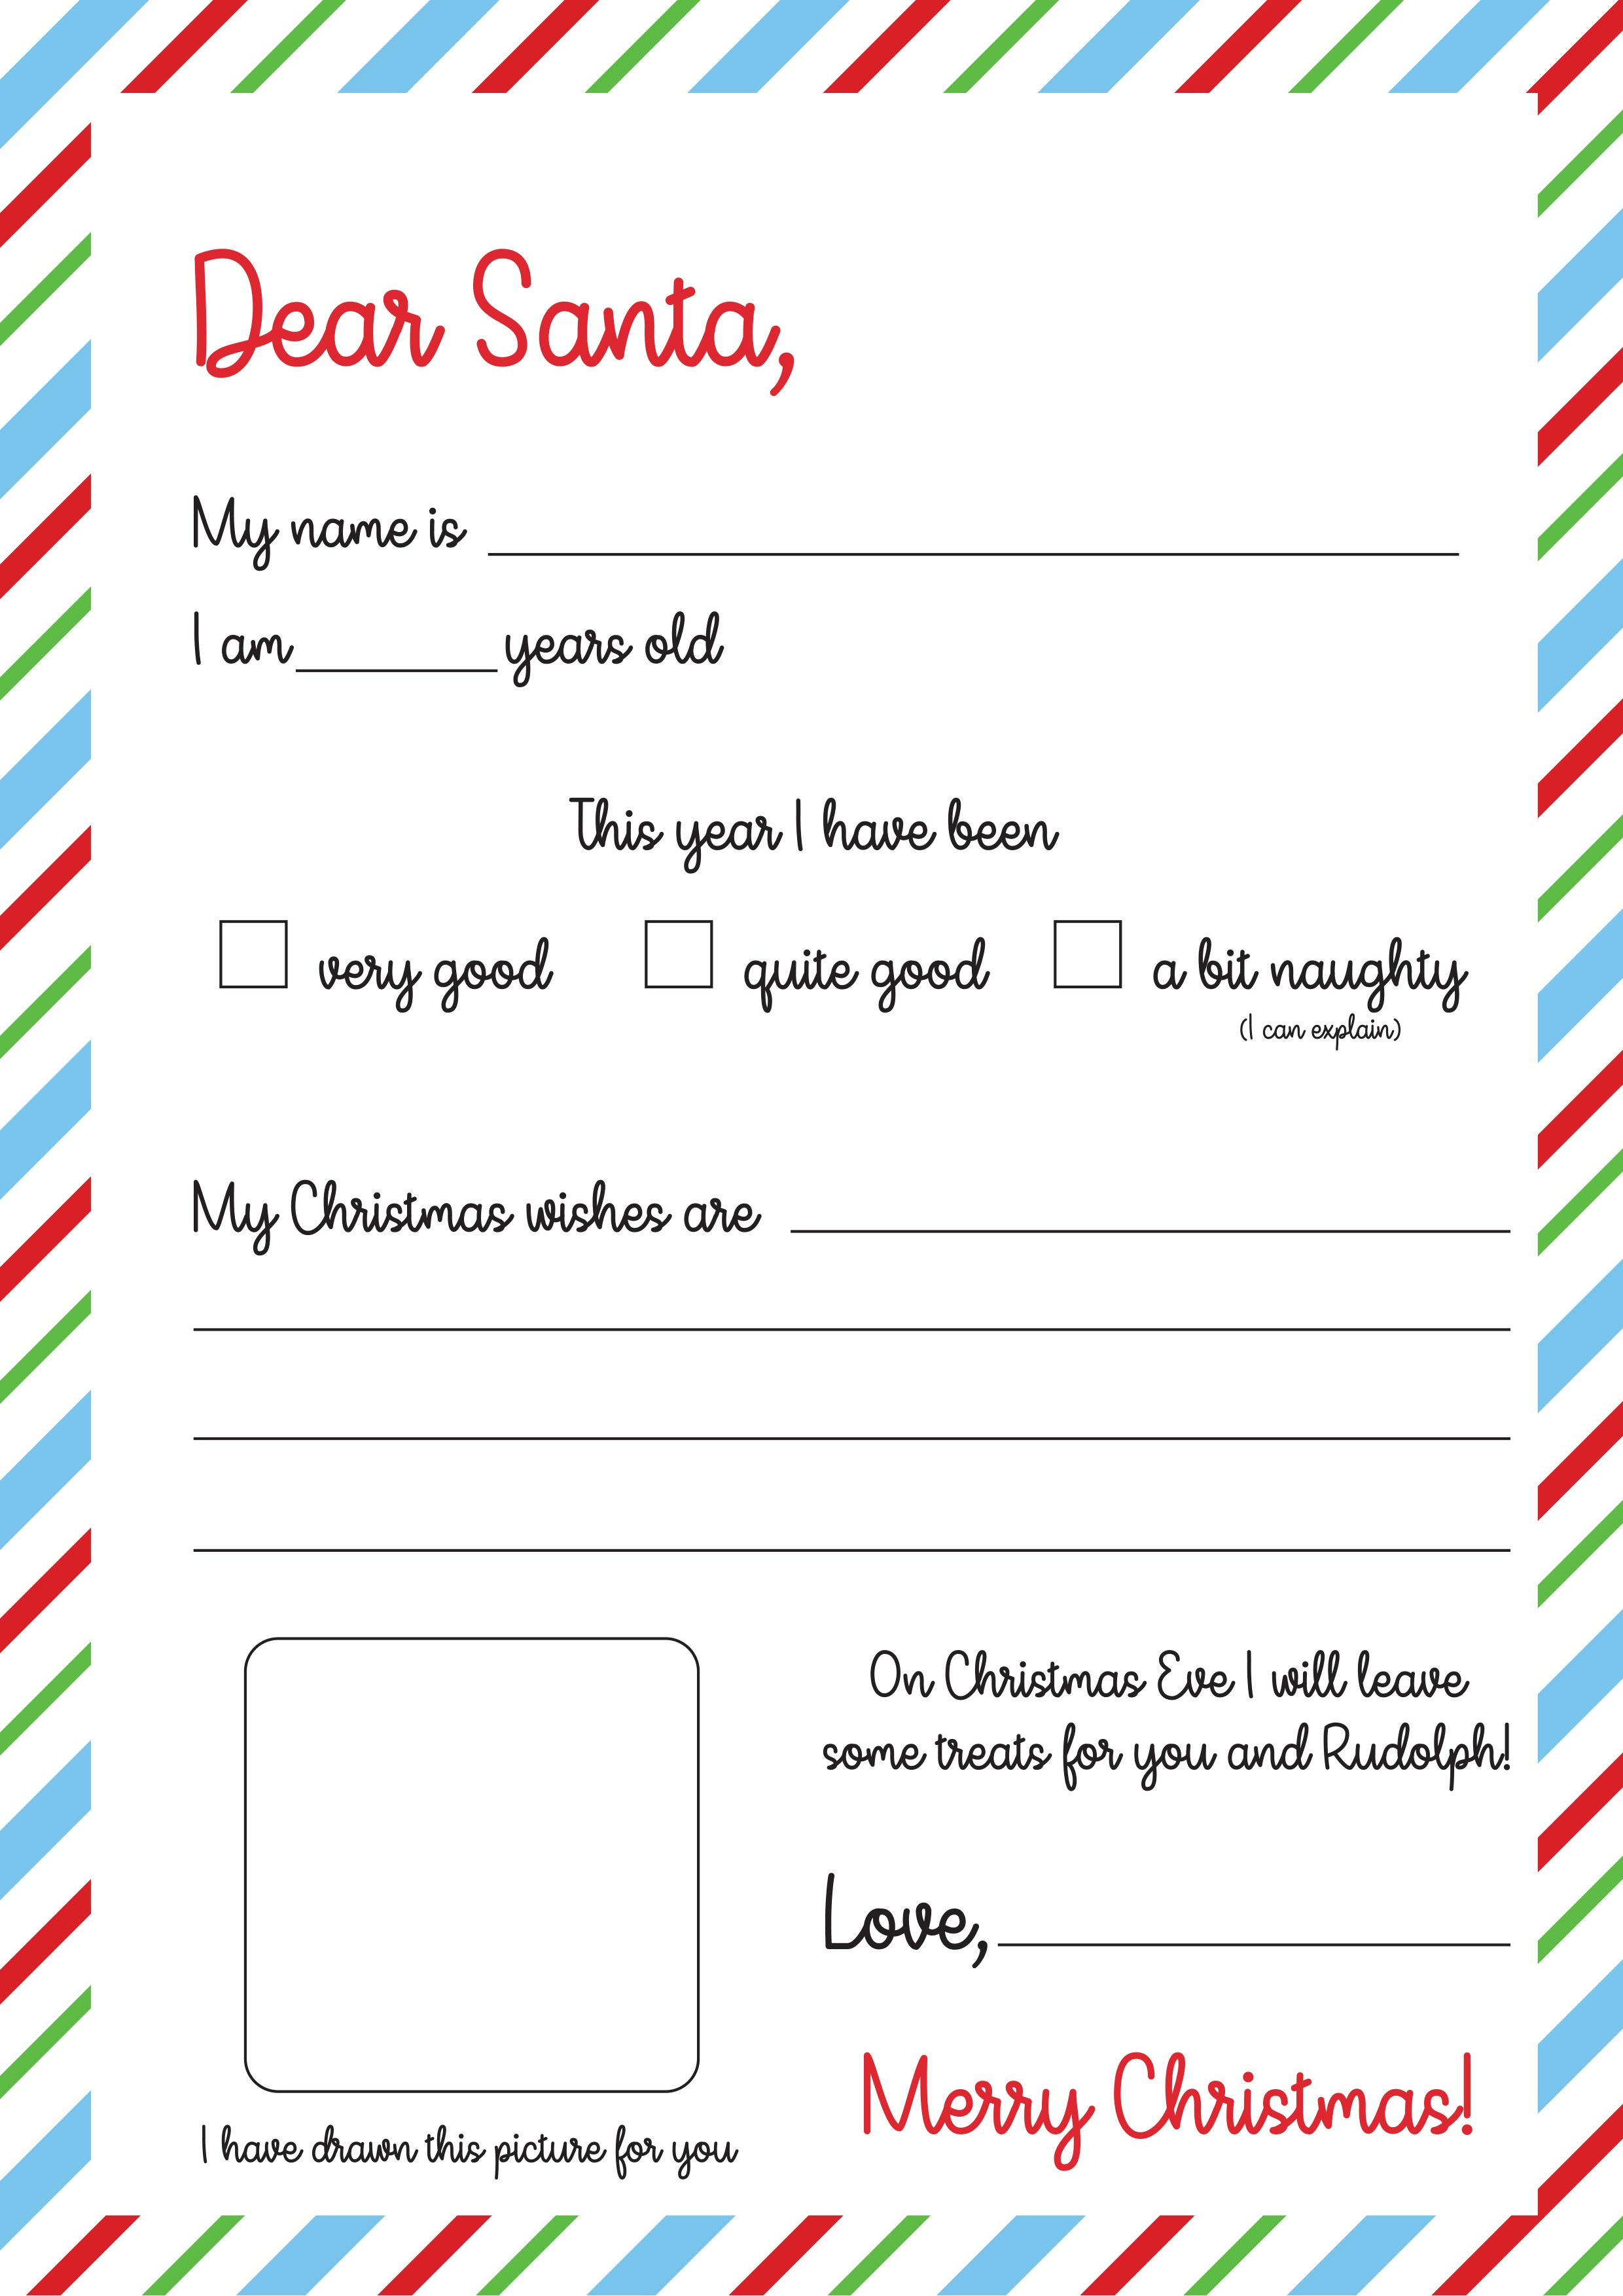 Free Letter To Santa Template Print | The Craft Blog - Letter To Santa Template Free Printable